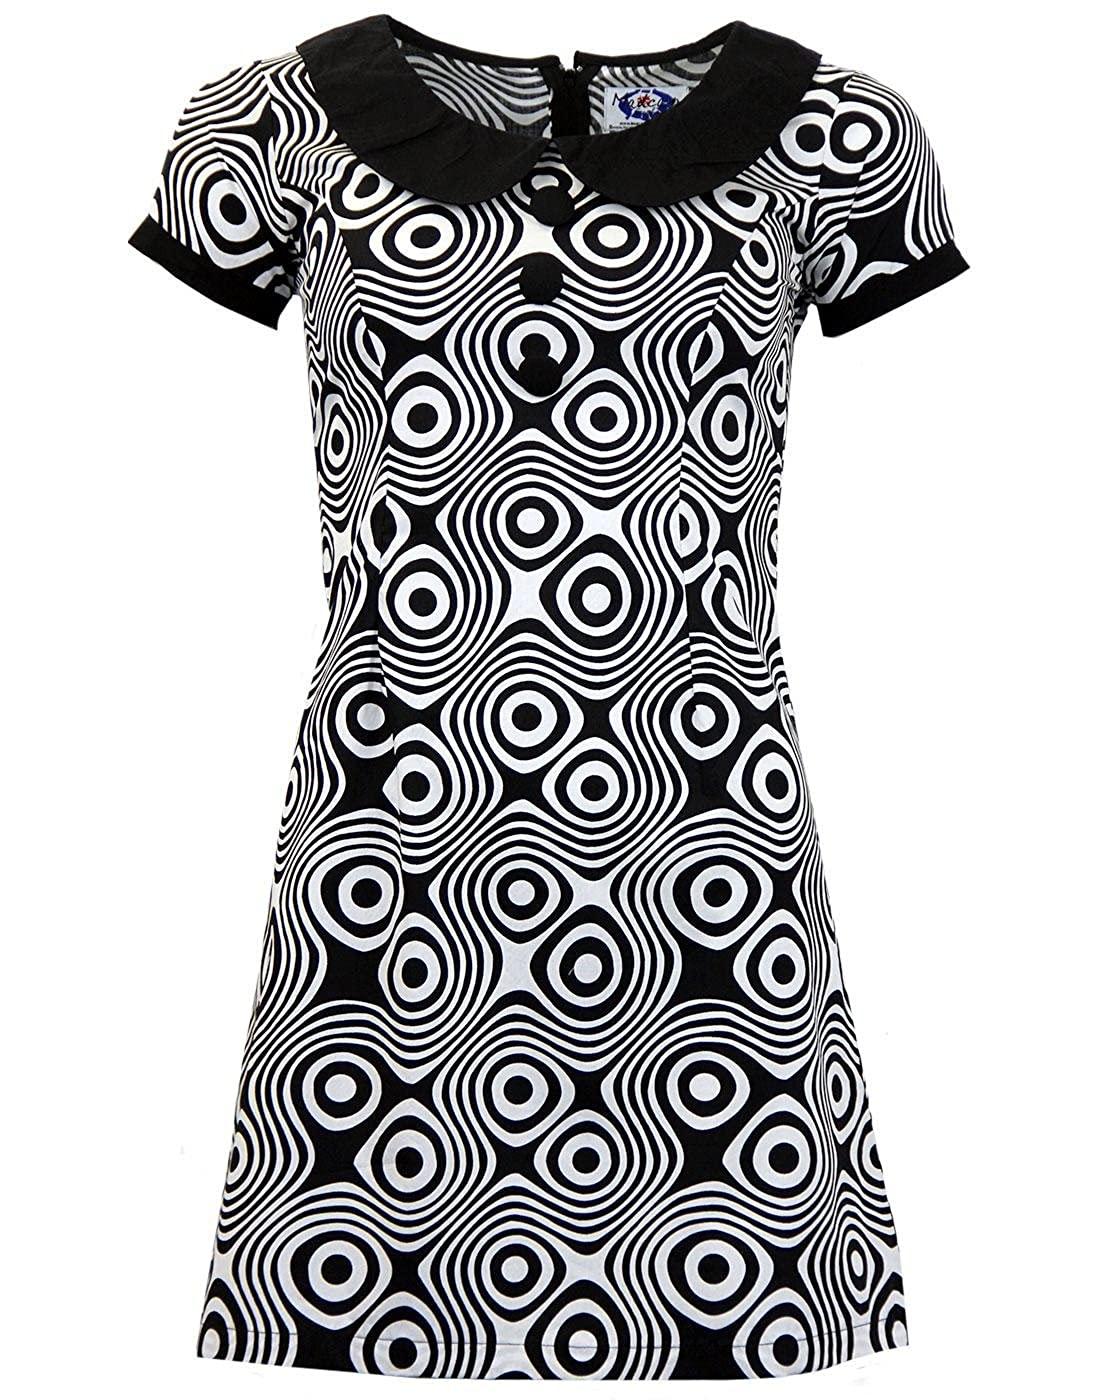 60s Costumes: Hippie, Go Go Dancer, Flower Child, Mod Style Madcap England Womens Dollierocker Op Art 1960s Retro Mod Mini Dress £39.99 AT vintagedancer.com